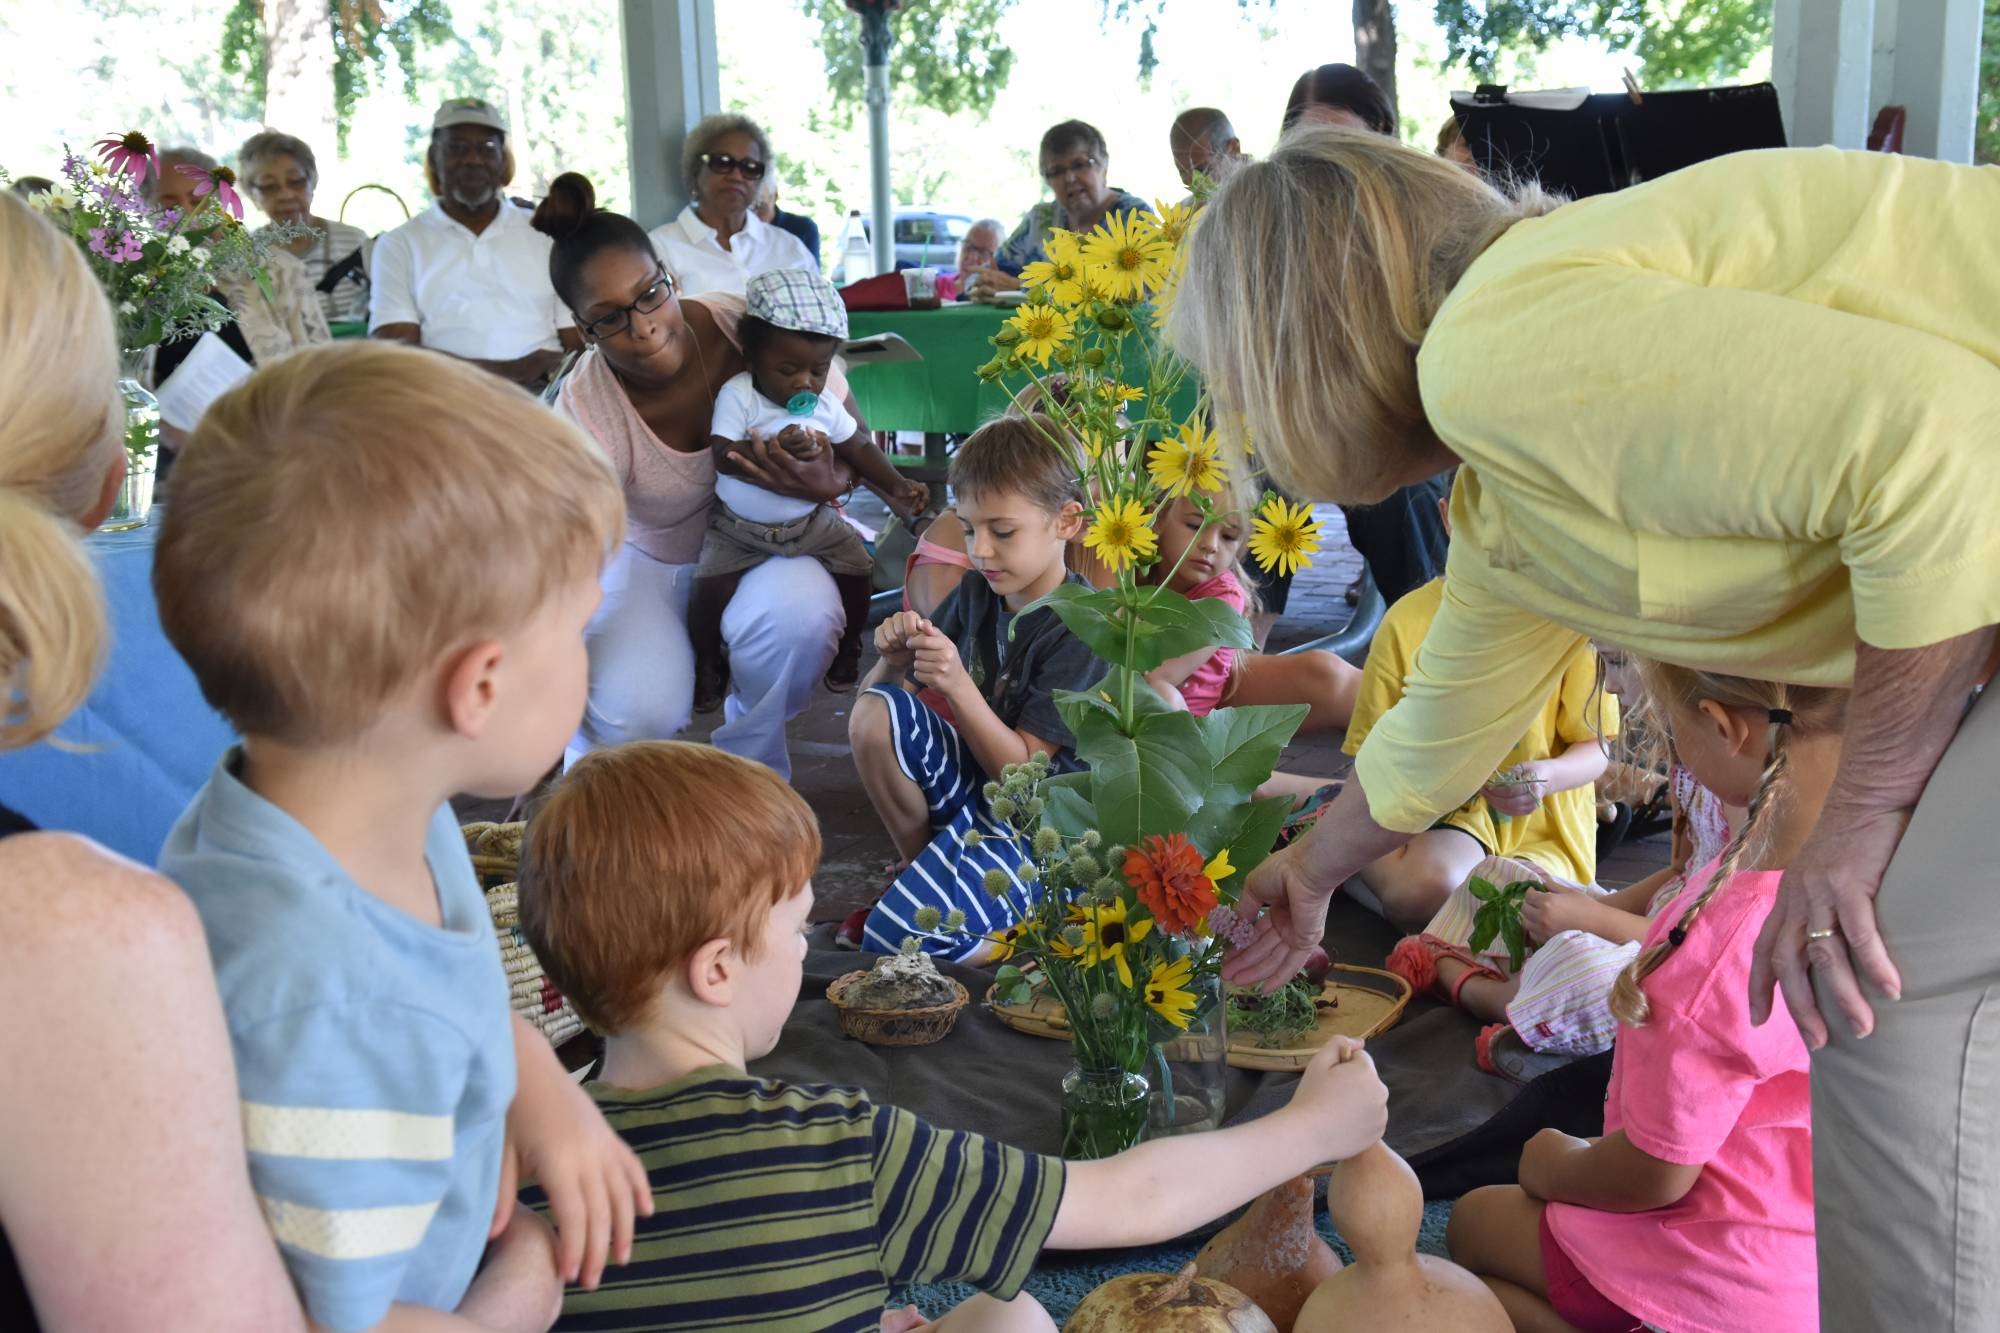 kids and adults with flowers in a worship service